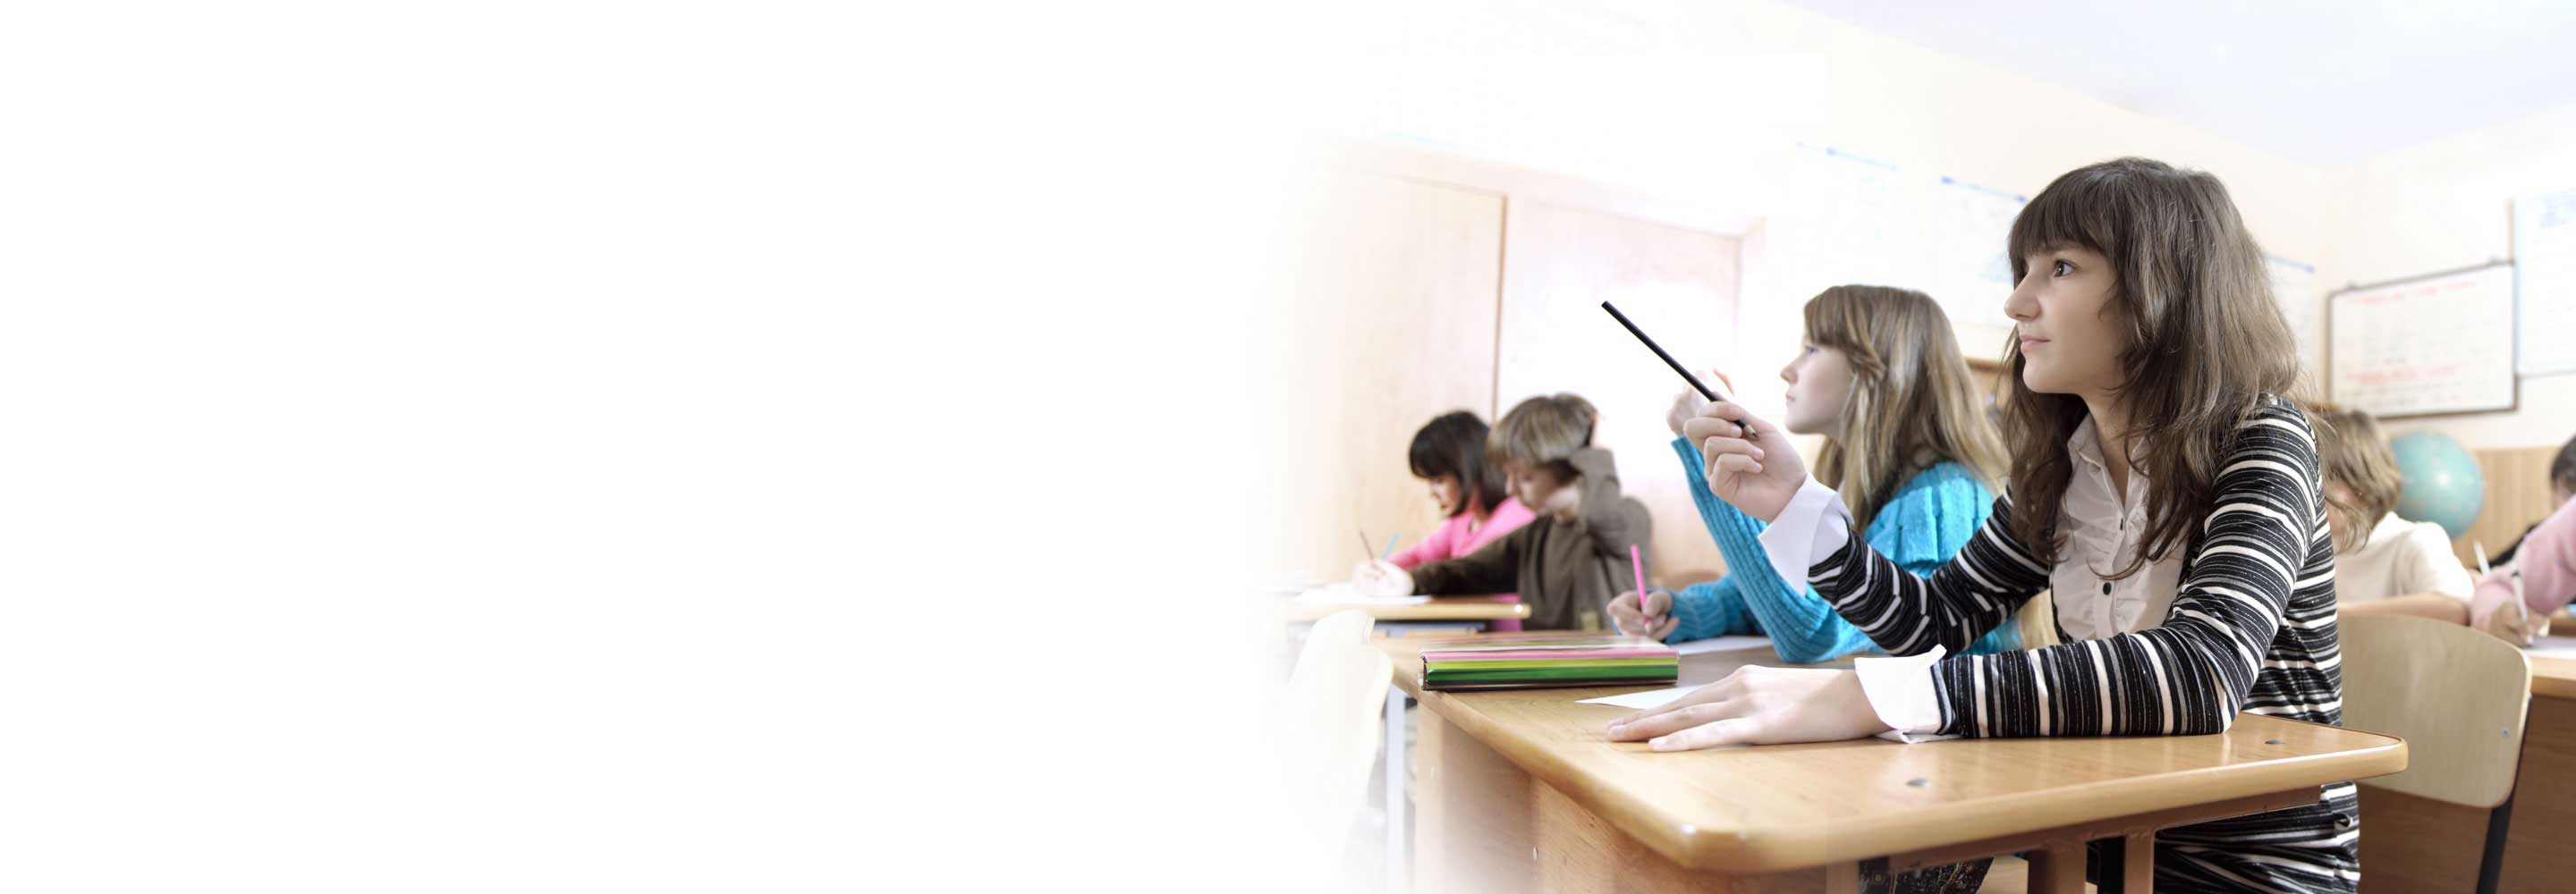 student pointing to whiteboard in class